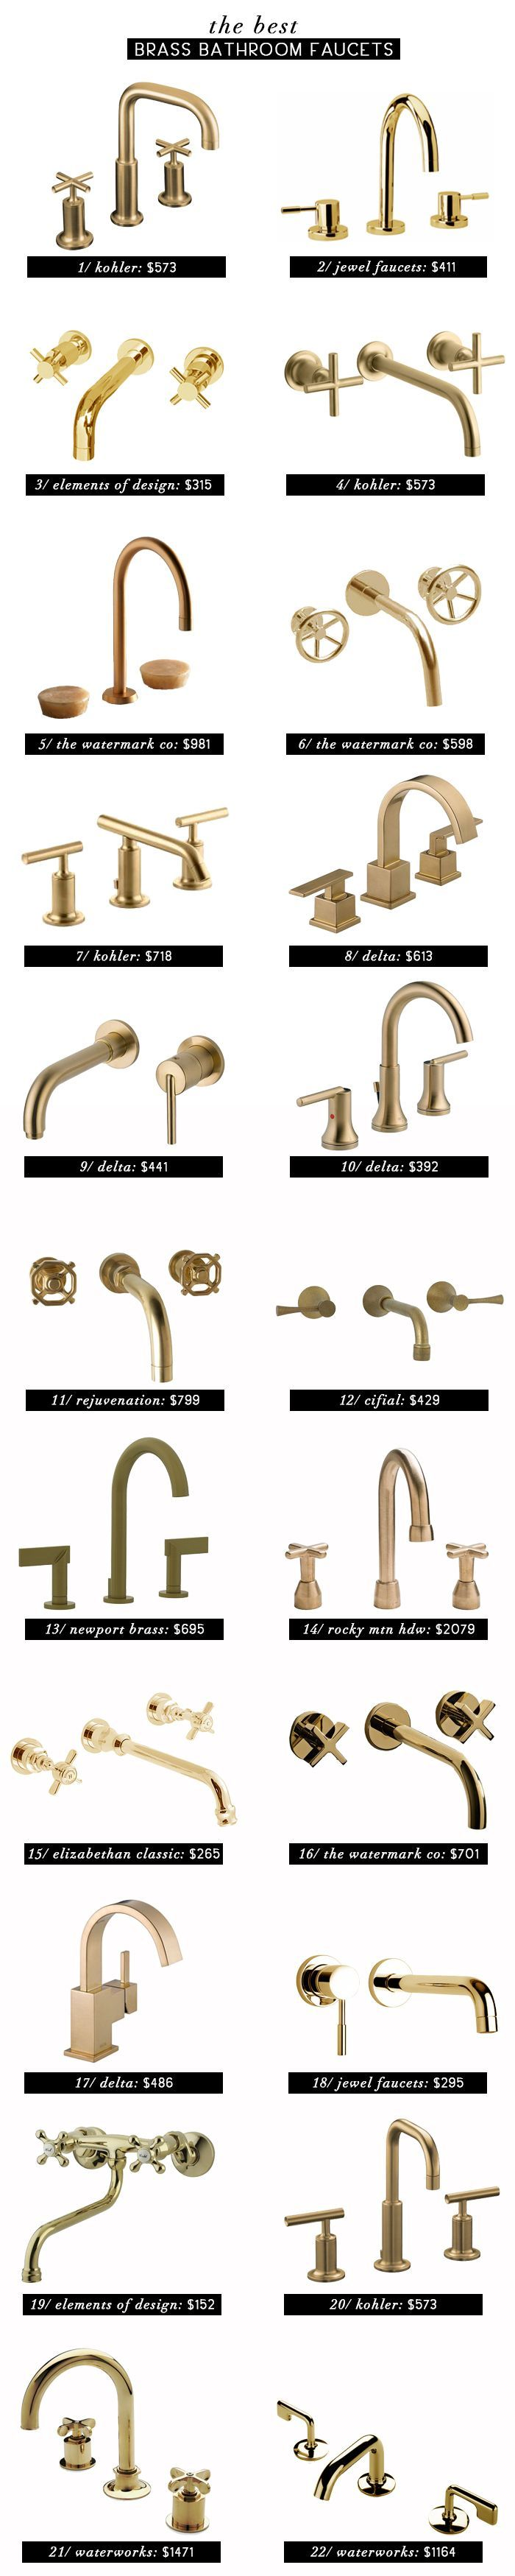 Style by Emily Henderson - Brass Faucets Roundup #BathroomFaucets